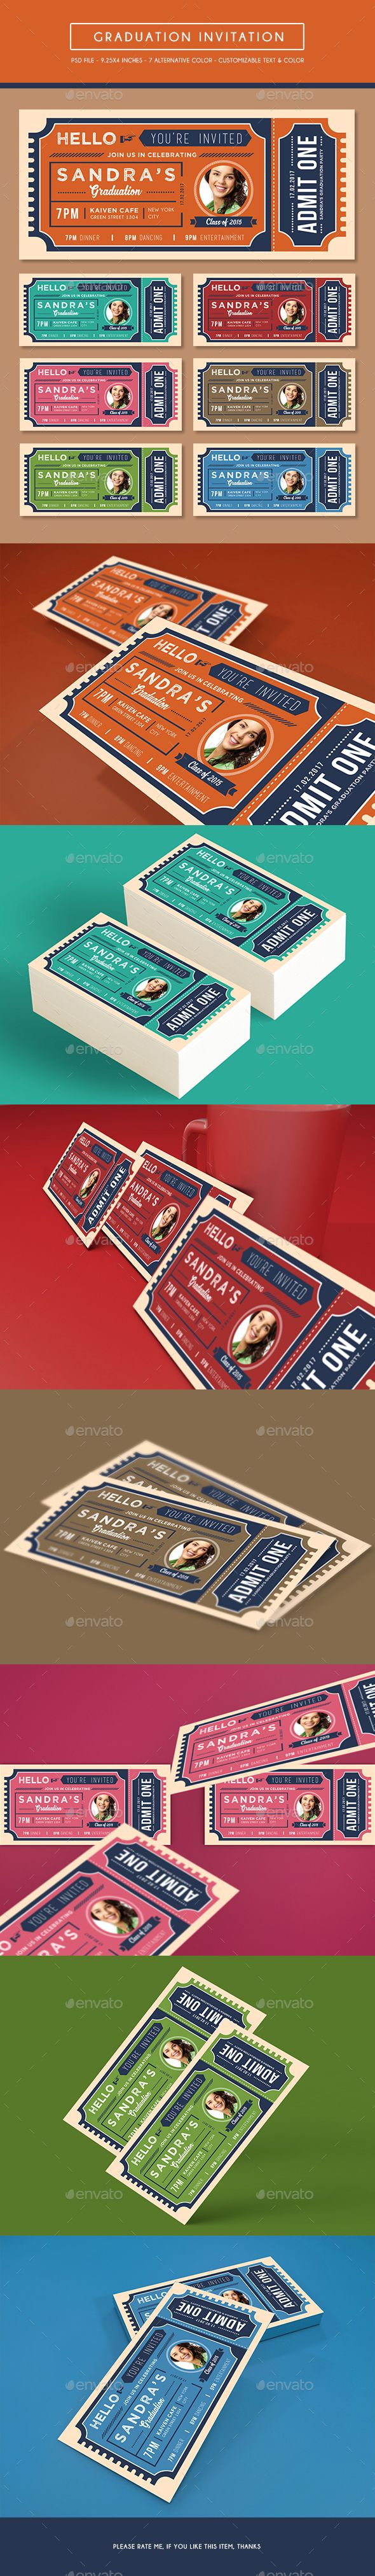 Best Birthday Invitation Templates Images On Pinterest - Birthday invitation template graphicriver